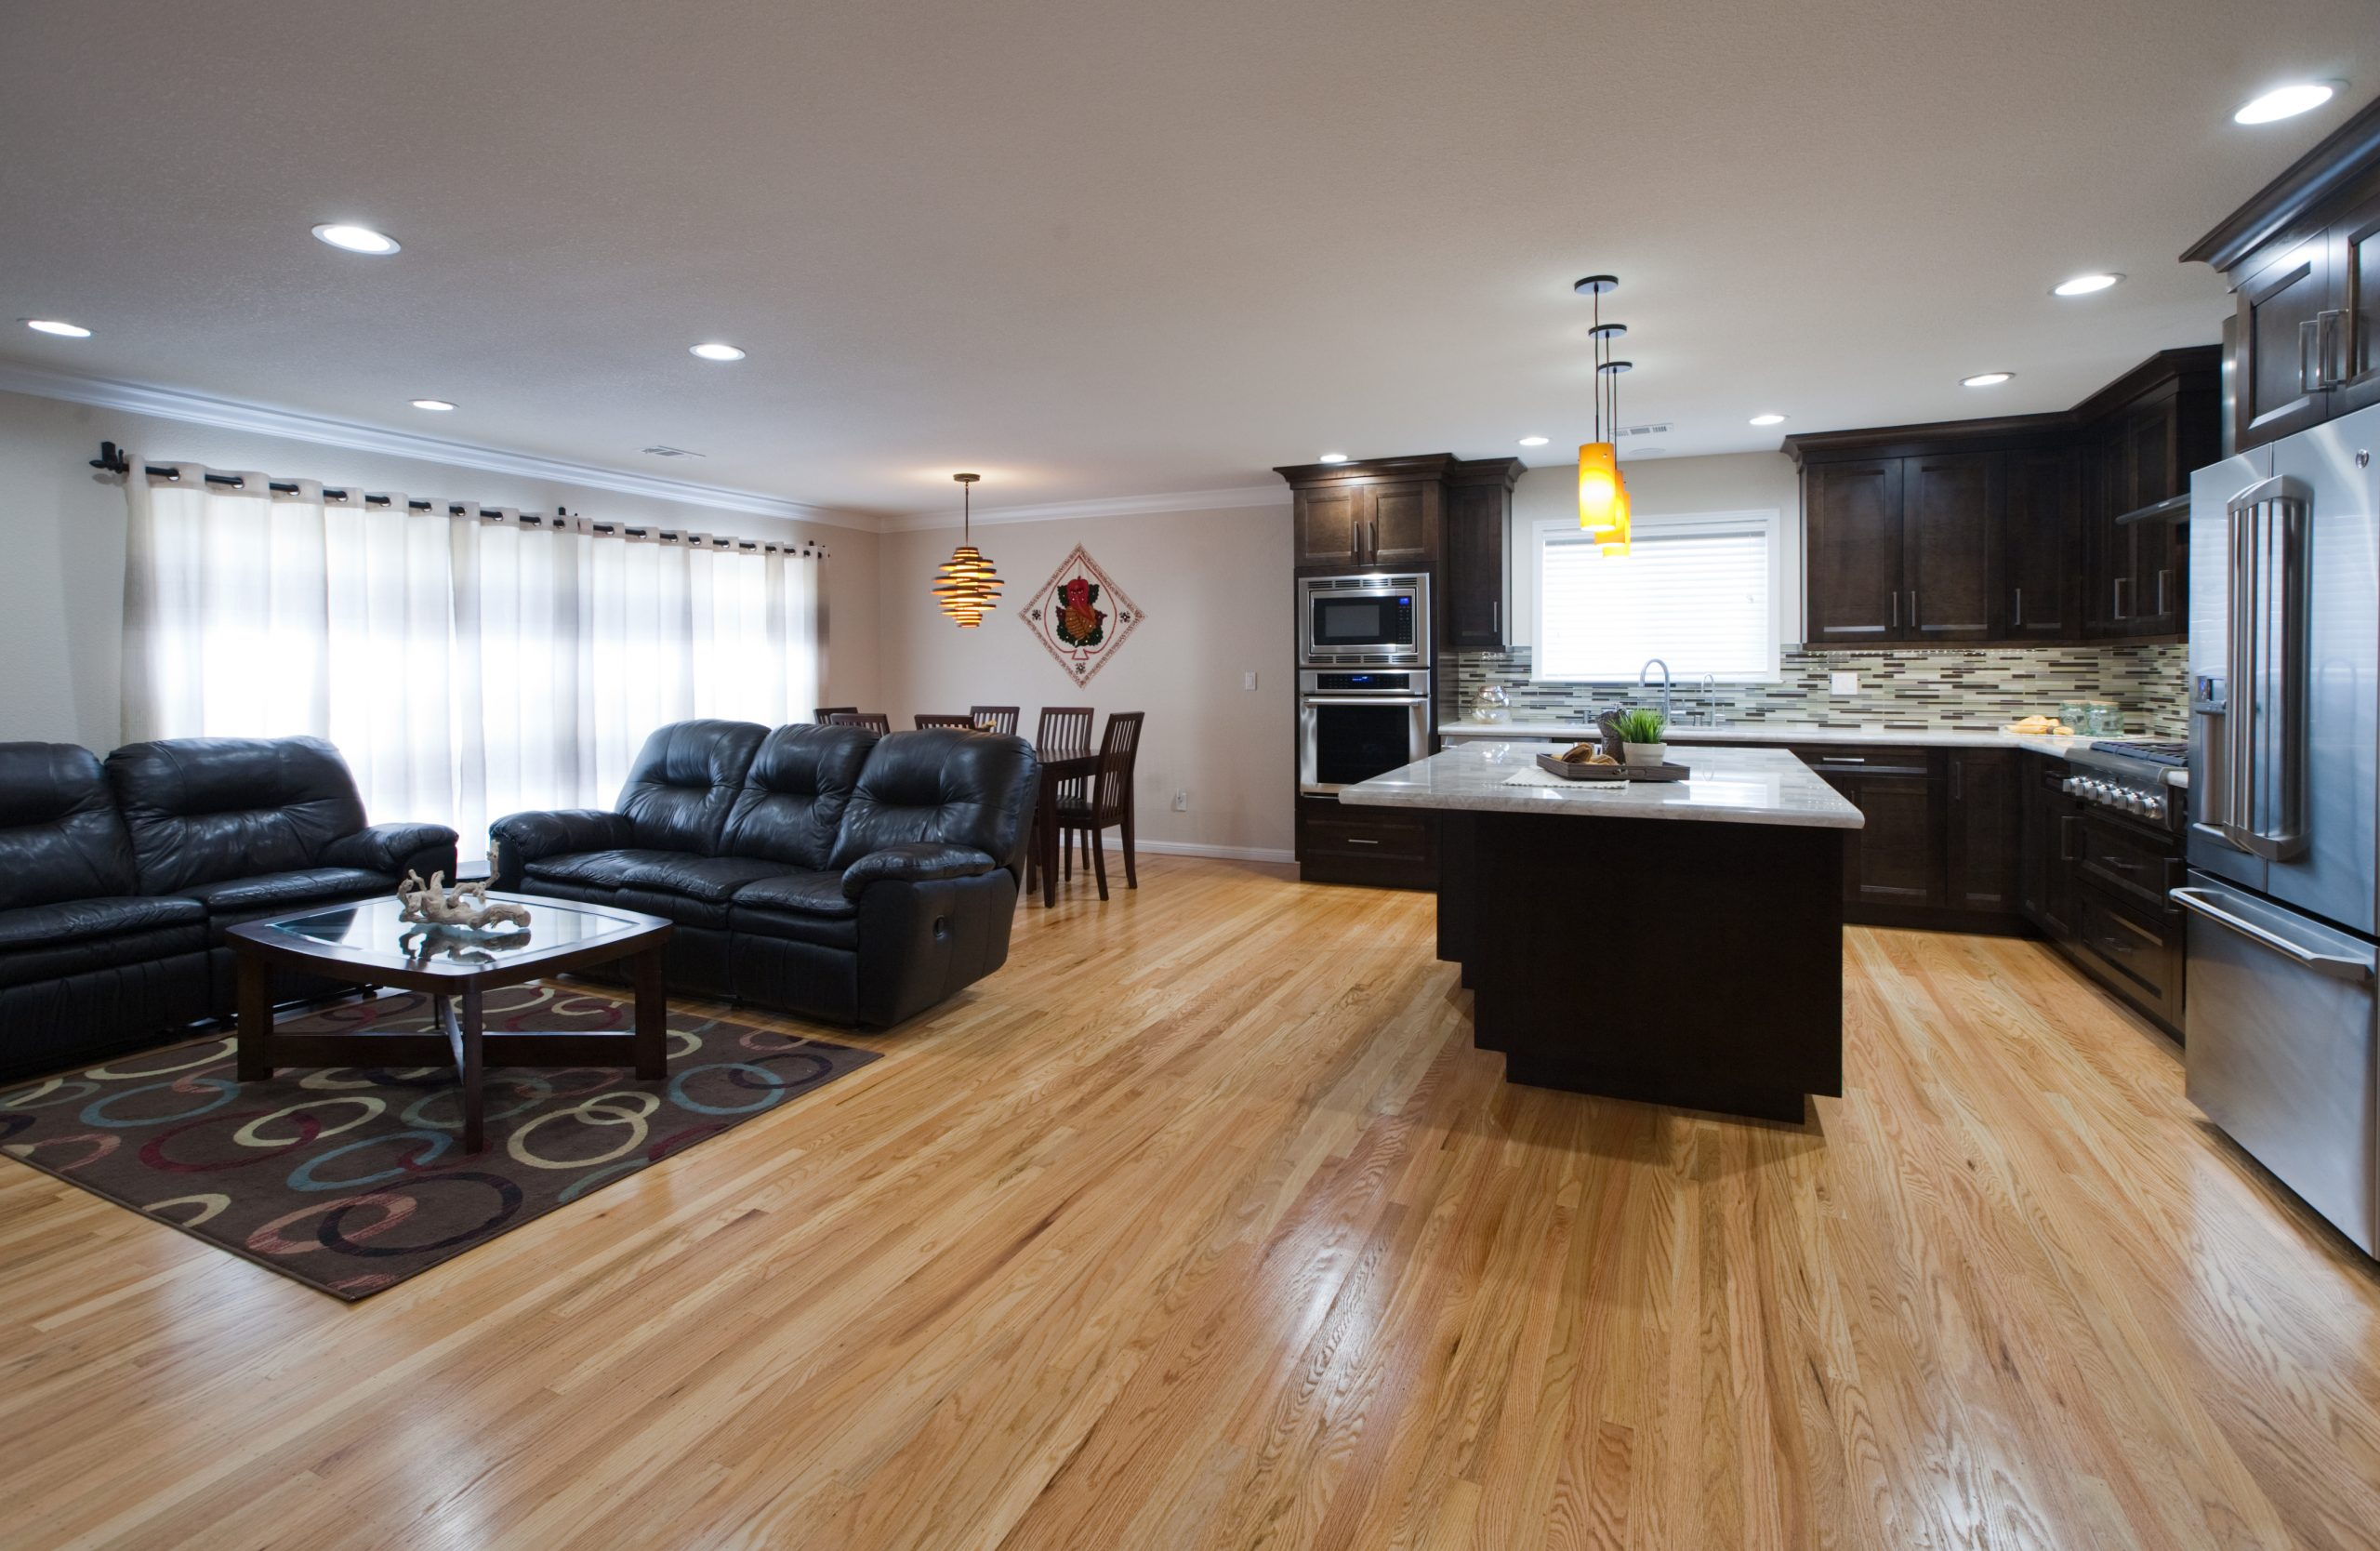 A living room and kitchen remodel with hardwood floors and granite counter tops.